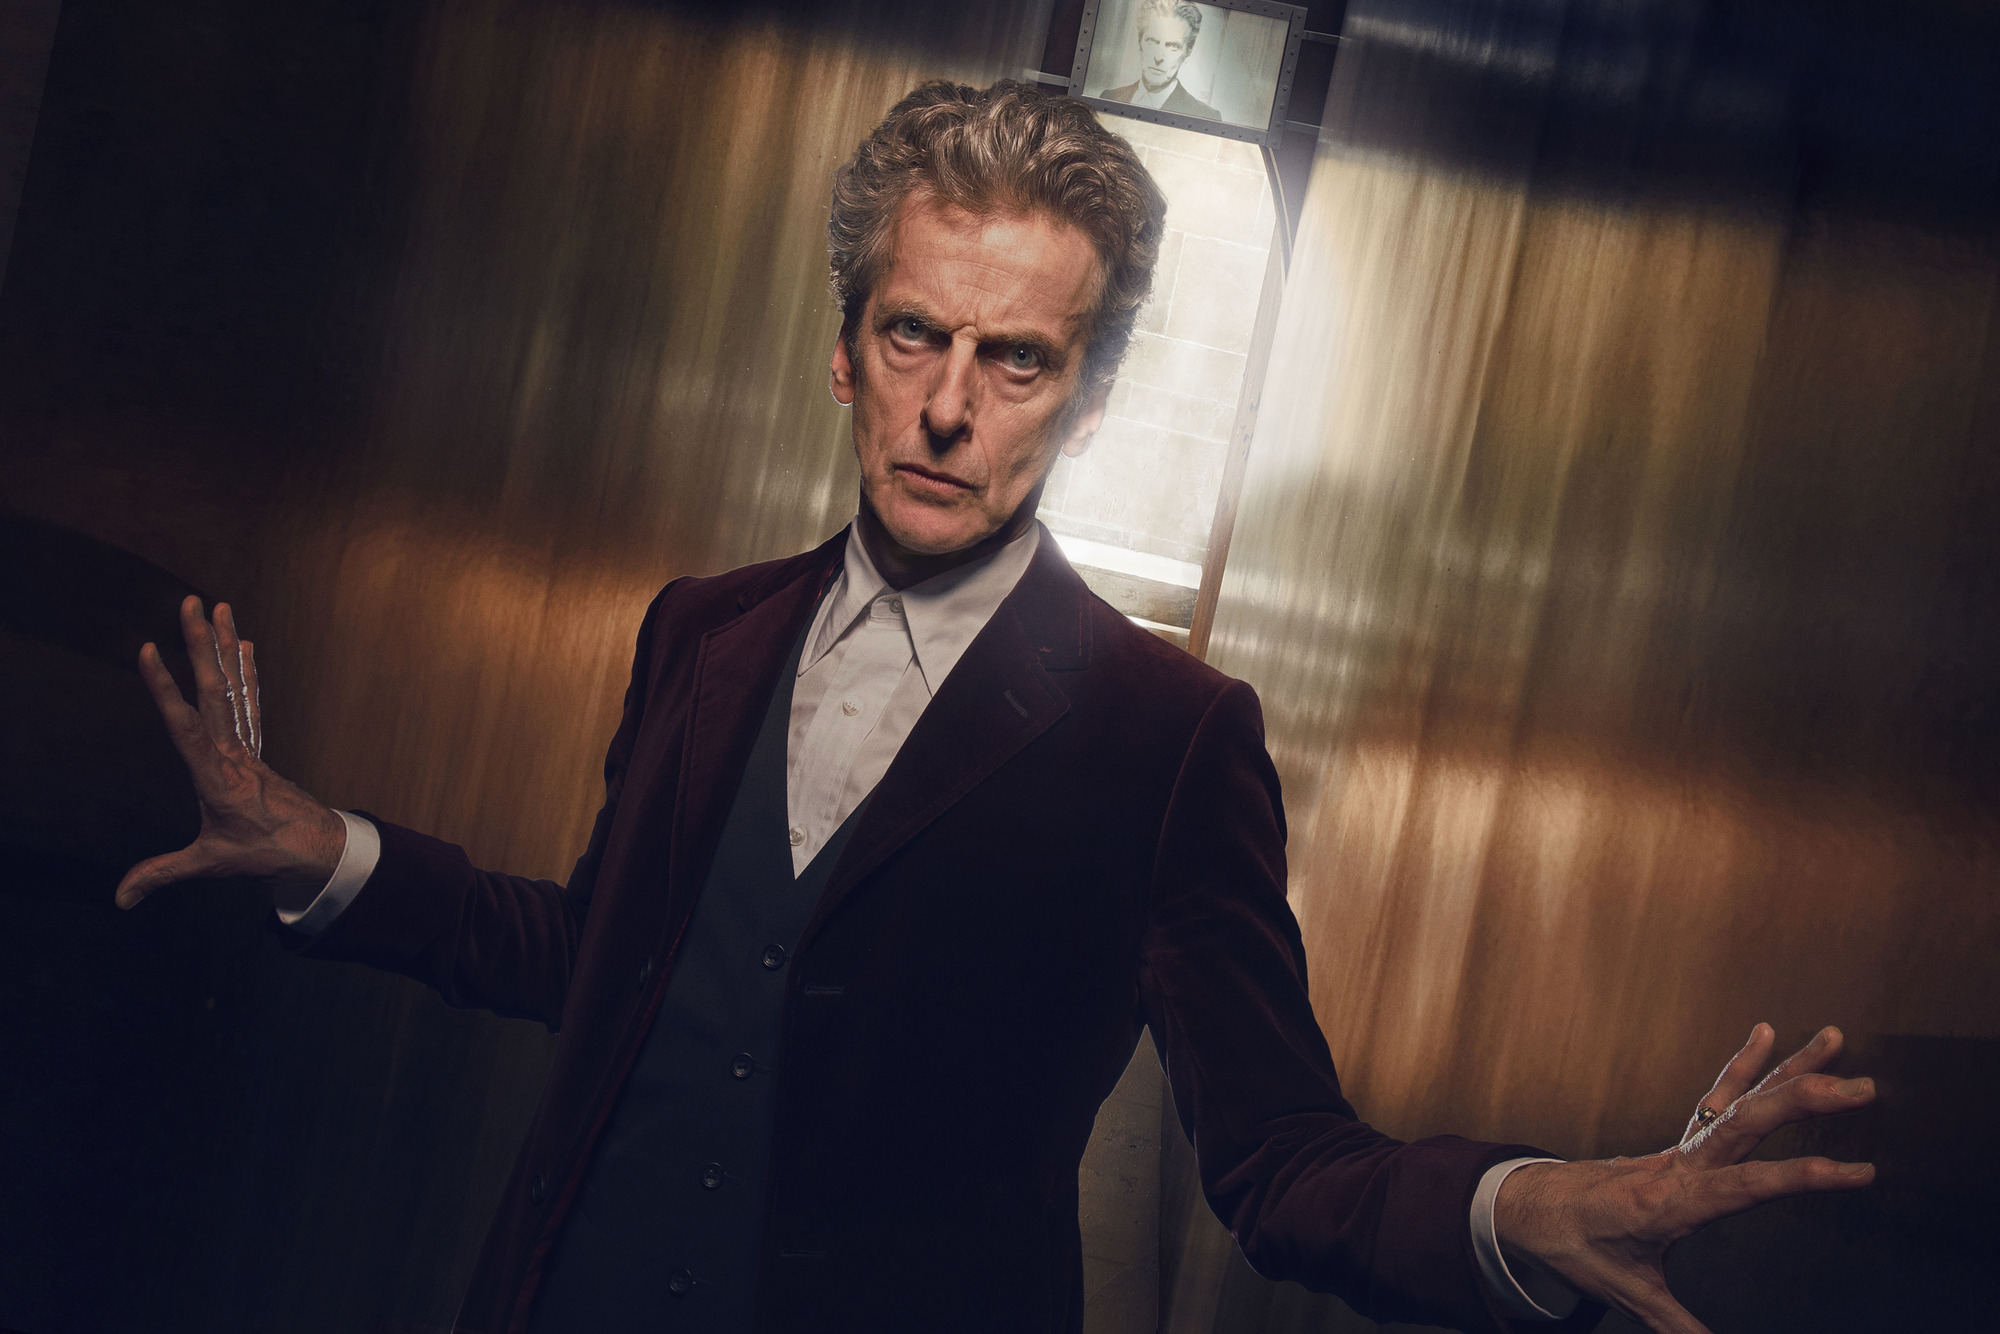 As both Peter Capaldi and Steve Moffat leave Doctor Who, is this finally the end for the show?